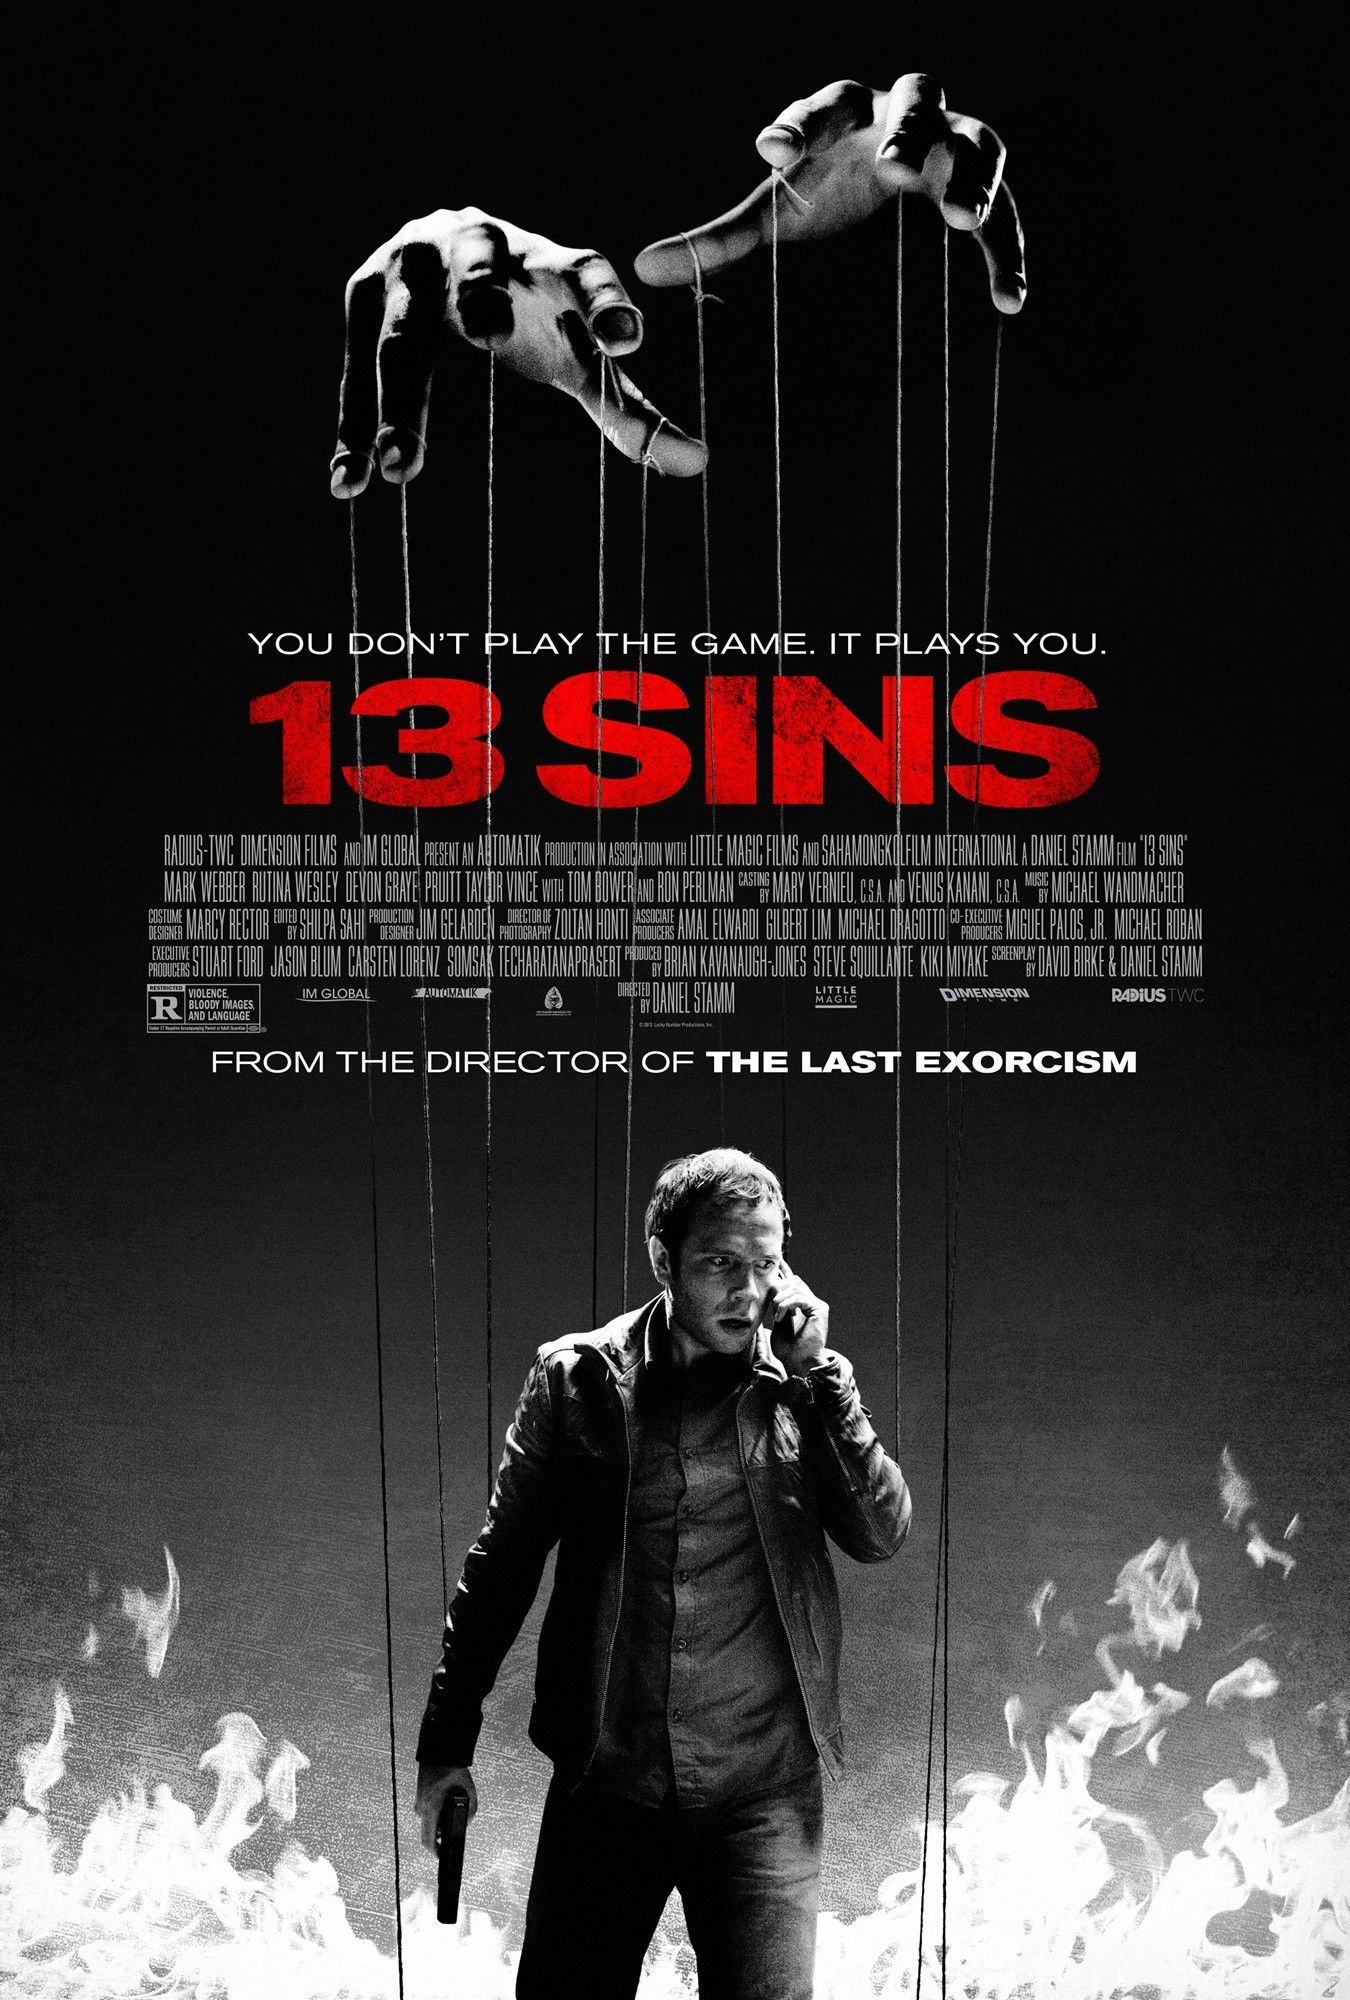 Interview Daniel Stamm Talks 13 Sins Interview: Daniel Stamm Talks 13 Sins